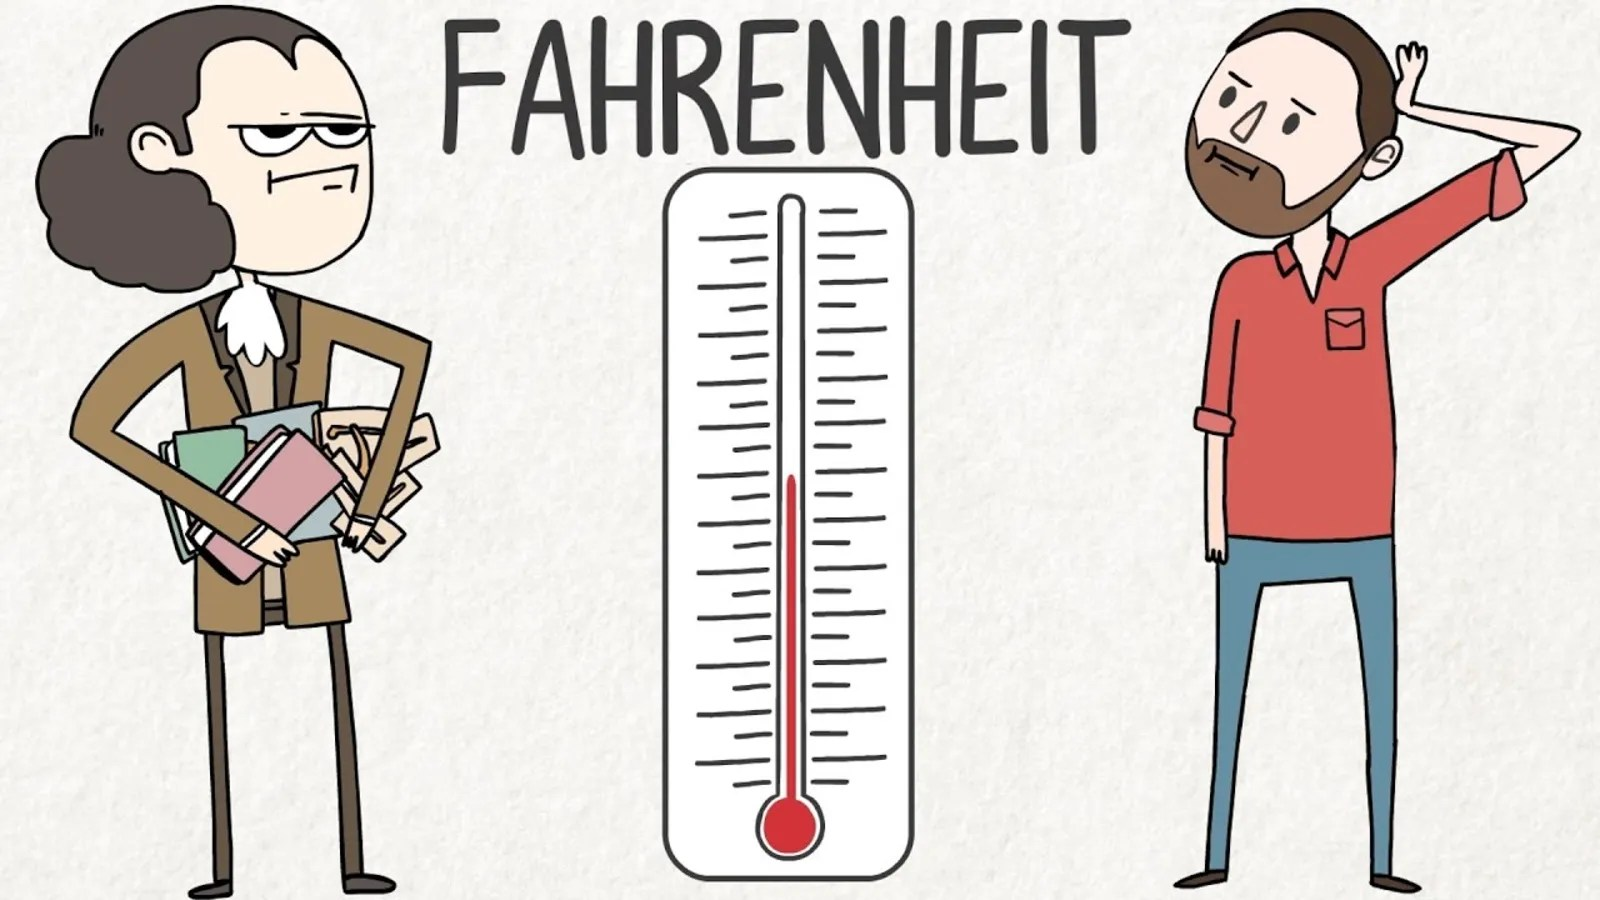 Why The Fahrenheit Temperature Scale Makes So Little Sense